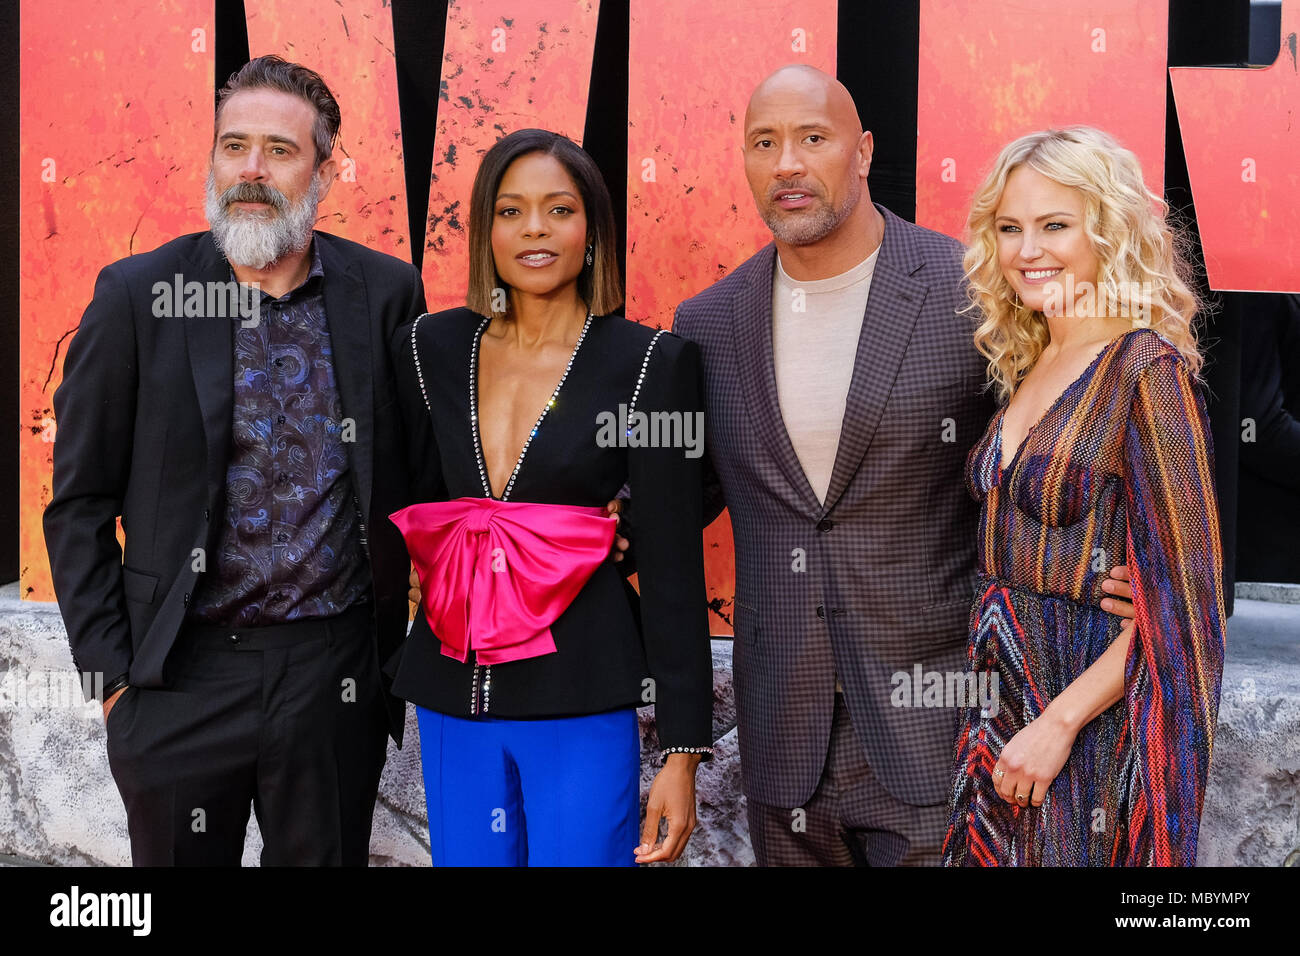 ¿Cuánto mide Dwayne Johnson (The Rock)? - Altura - Real height - Página 2 Cast-at-european-premiere-of-rampage-on-wednesday-11-april-2018-held-at-cineworld-leicester-square-london-pictured-dwayne-johnson-the-rock-naomie-harris-malin-akerman-jeffrey-dean-morgan-MBYMPY